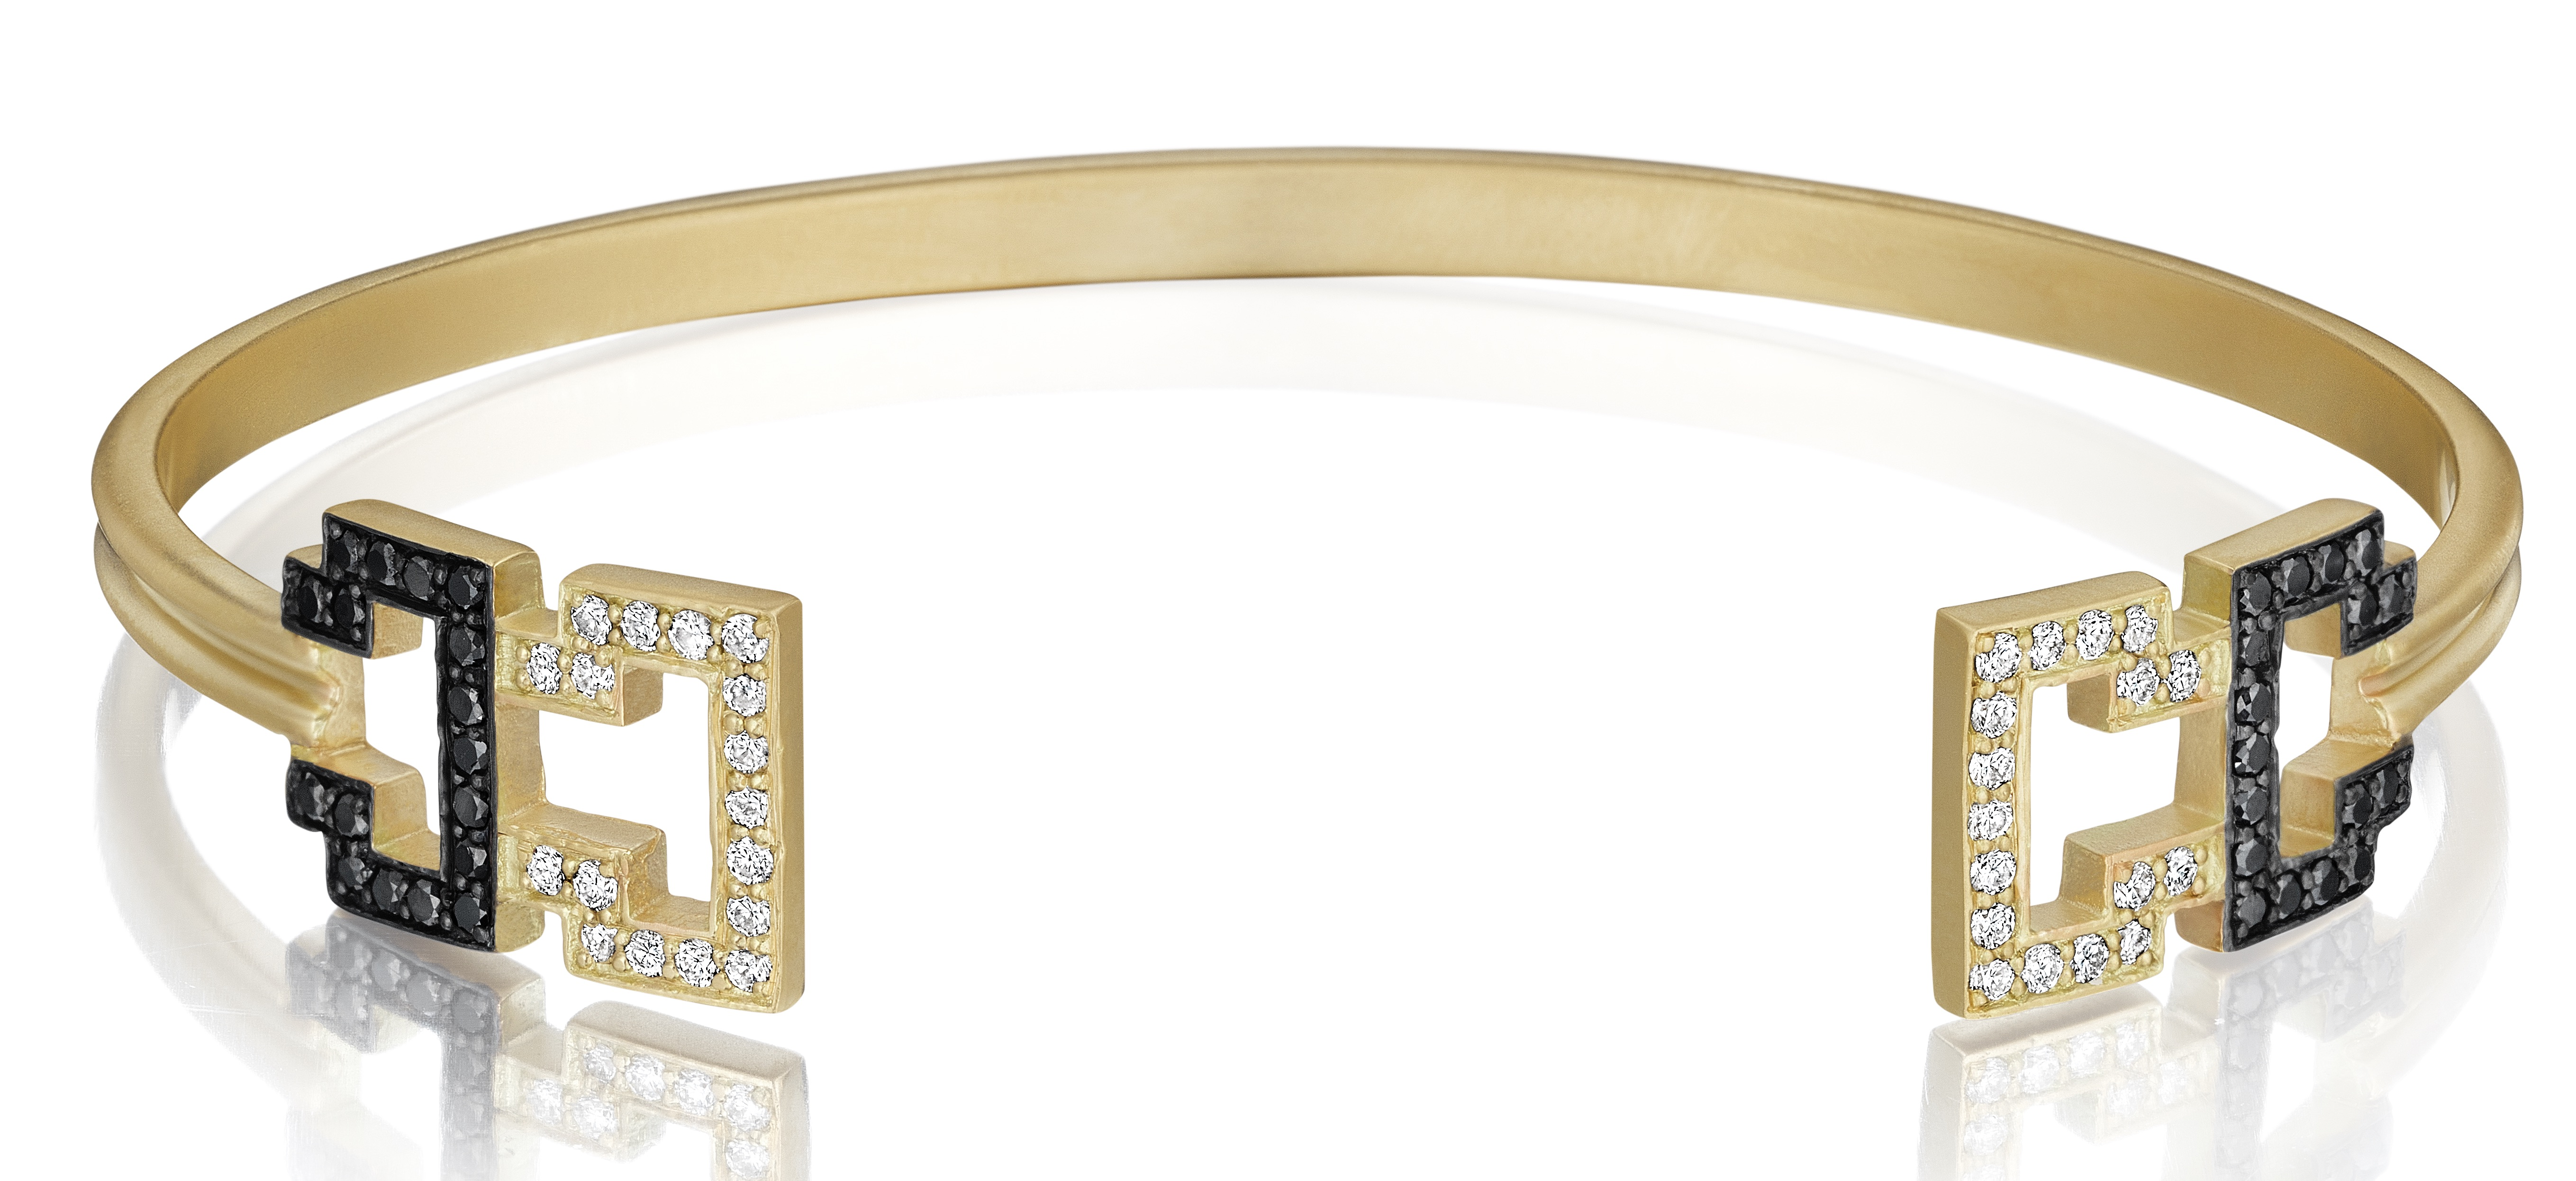 Doryn Wallach Greek Key cuff bracelet | JCK On Your Market